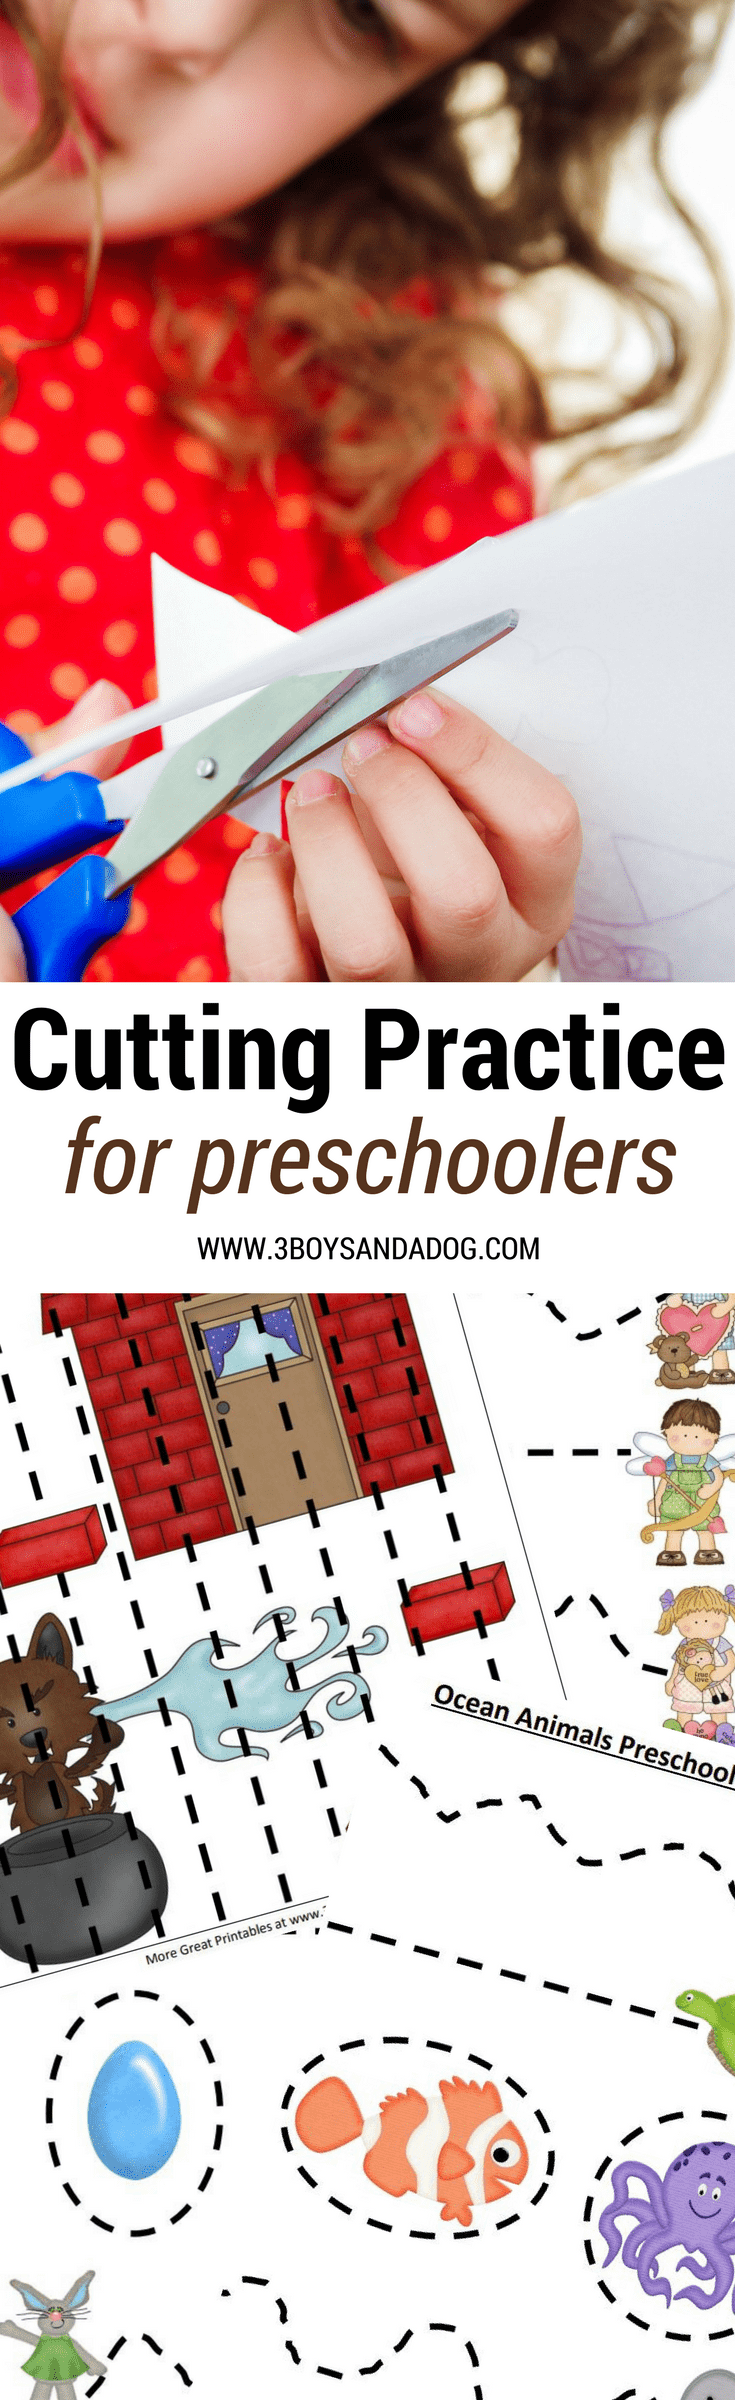 These Printable Cutting Worksheets for Preschoolers will help your Preschool and Kindergartners improve dexterity and fine motor skills.  There are many different free preschool cutting practice worksheets here.  This is the ultimate list of Printable Cutting Worksheets for Preschoolers.